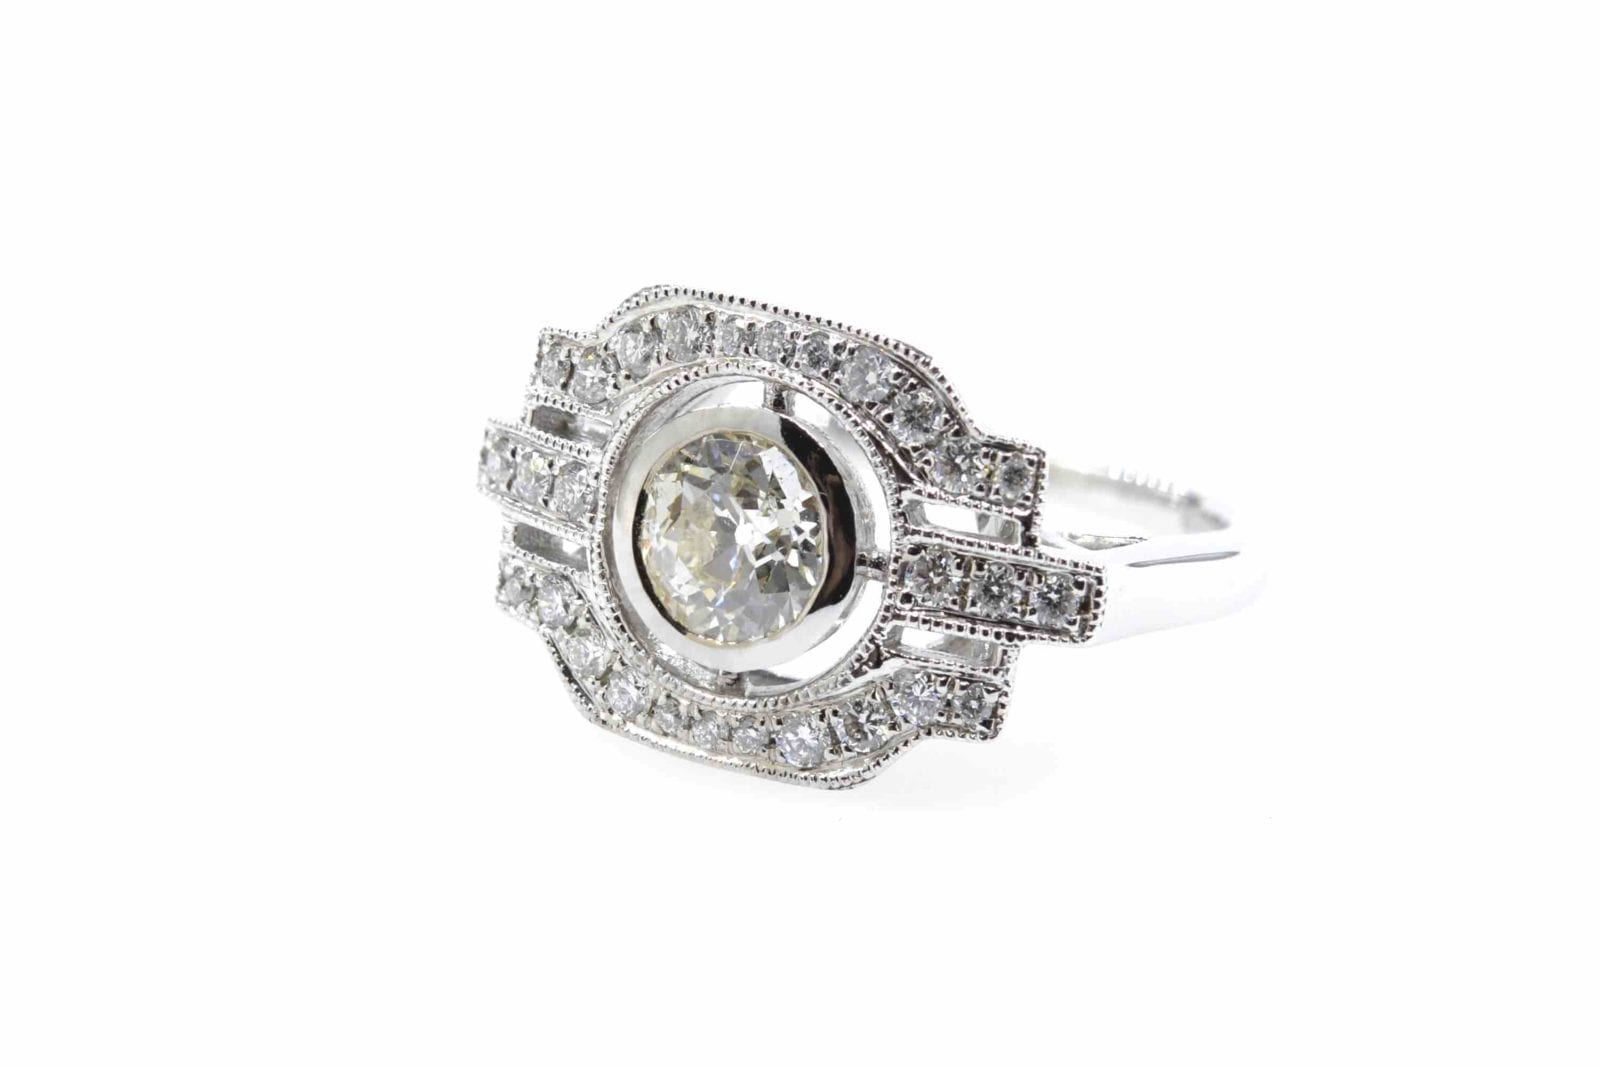 Bague de style vintage diamants en or blanc 18k